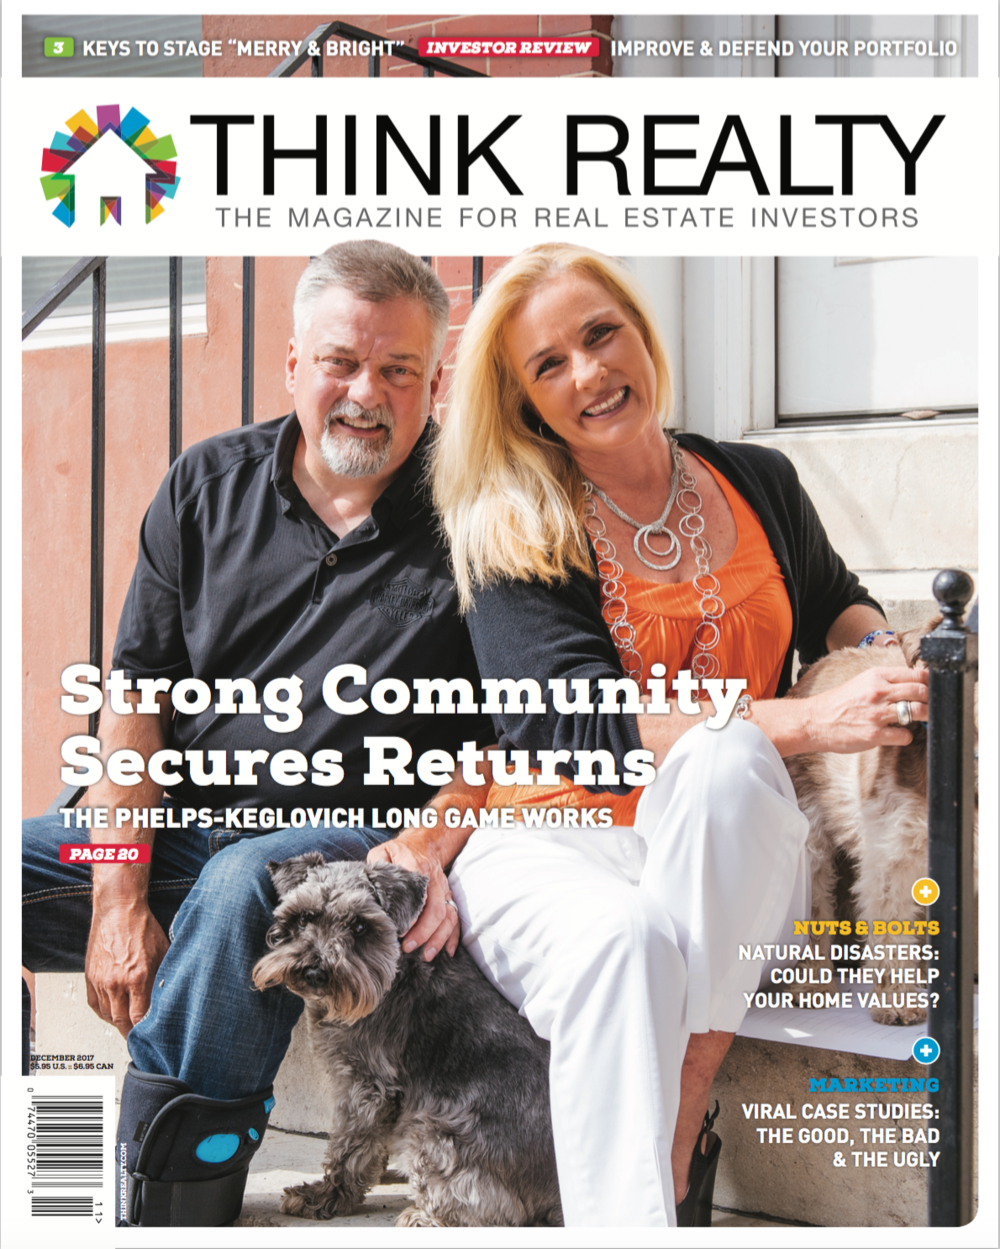 THINK REALTY MAGAZINE